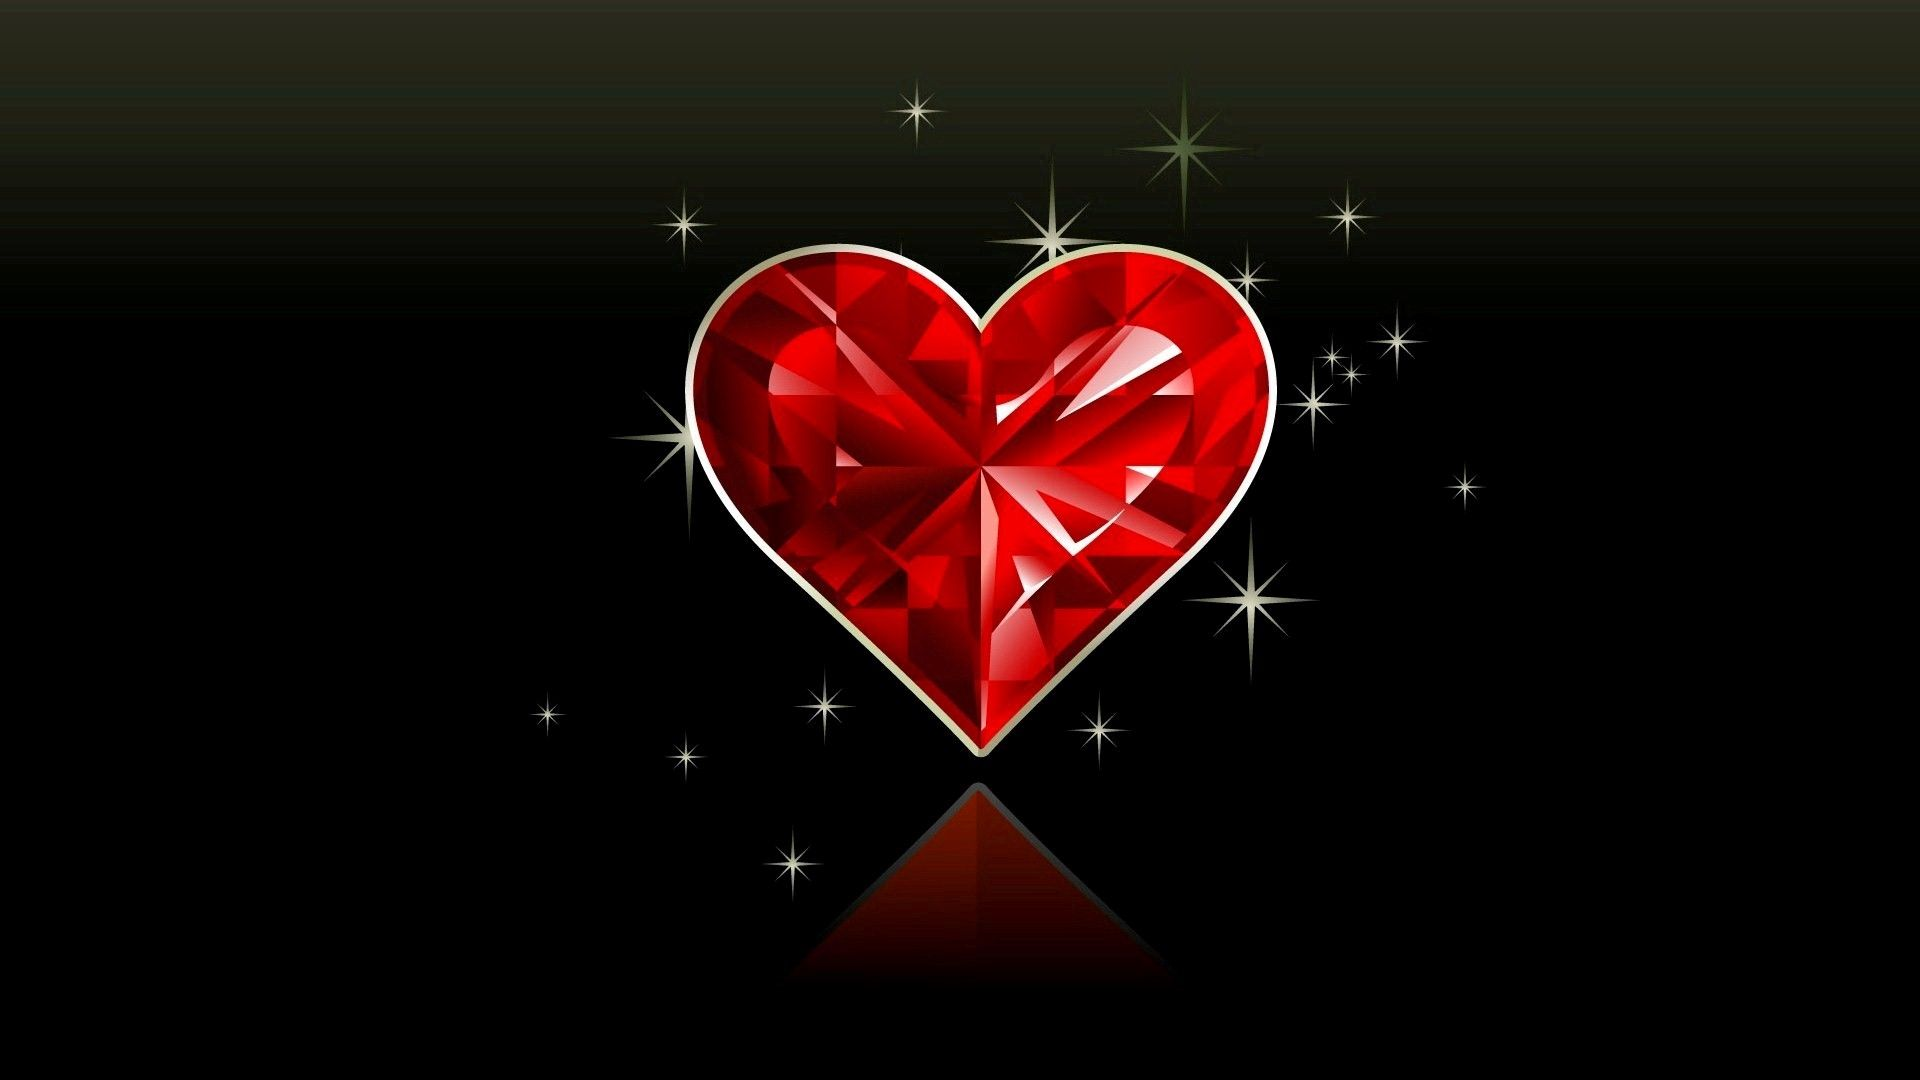 Love Images Hd Wallpapers 3450 Red Crystal Heart In Black Background Heart Wallpaper Love Wallpaper Heart Wallpaper Hd